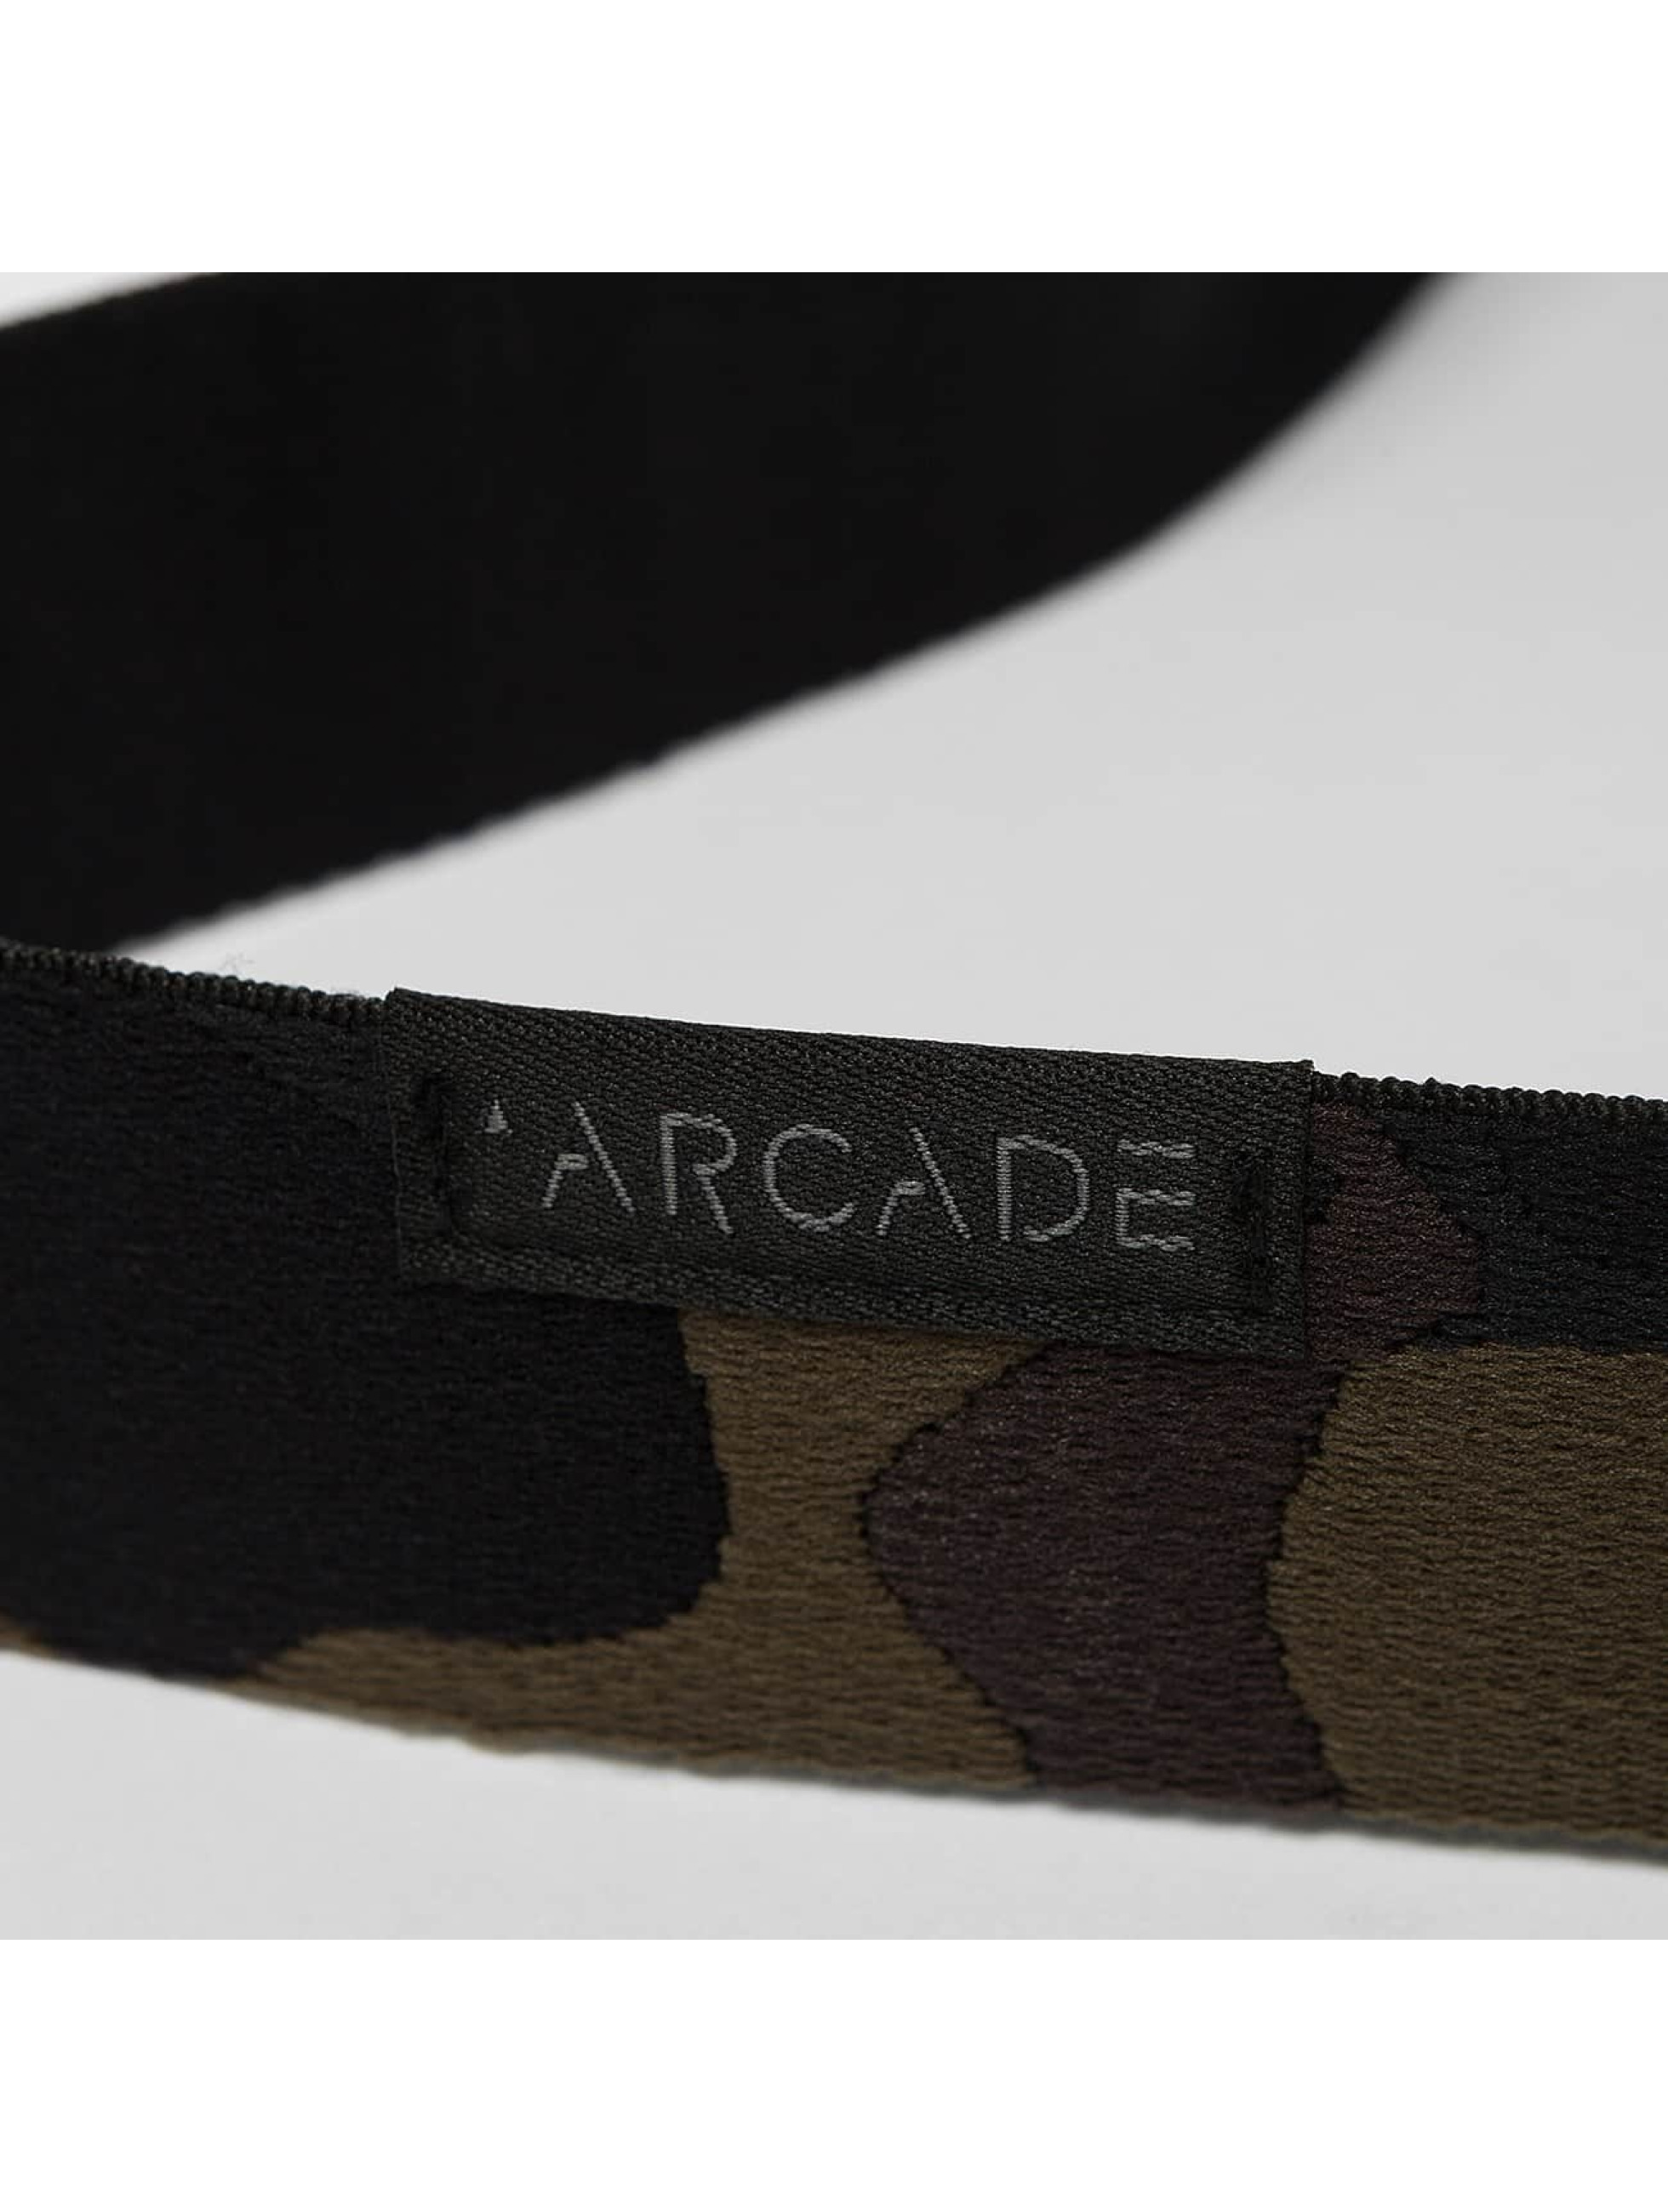 ARCADE Paski Native Collection Sierra Camo moro